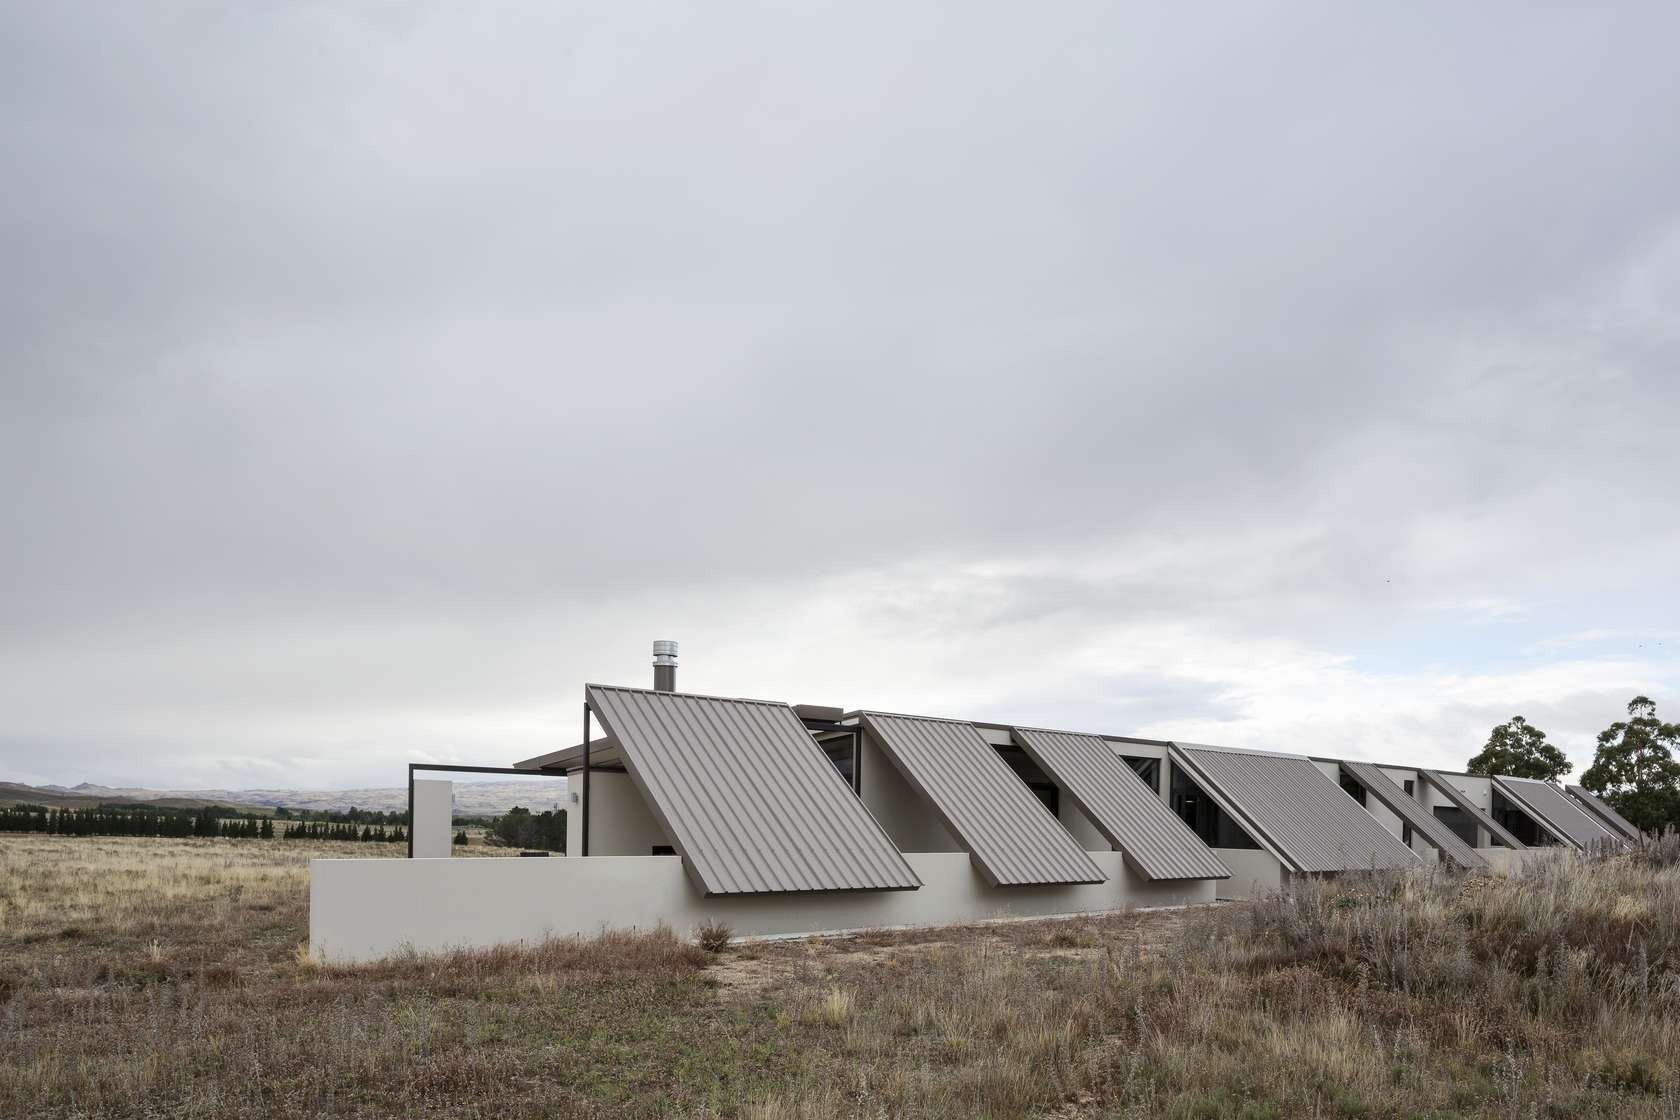 Tent House: A Super-Insulated And Permanent Tent For Living